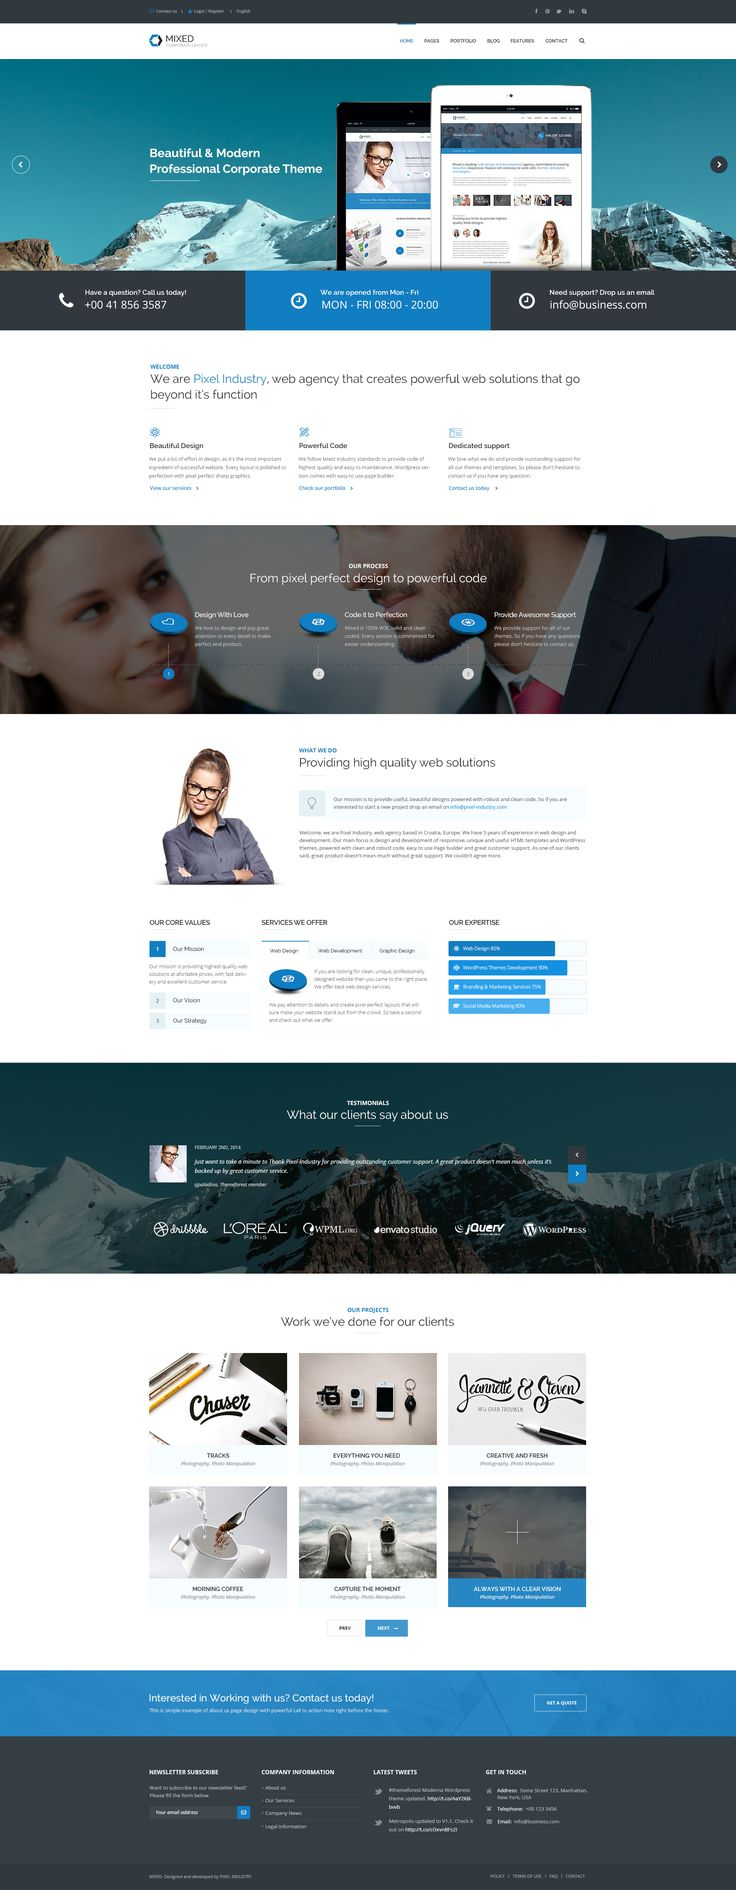 Our brand new corporate PSD template! Let us know your thoughts :)  Demo: http://themeforest.net/theme_previews/8722701-mixed-psd-for-any-business?url_name=mixed-psd-for-any-business?ref=pixel-industry